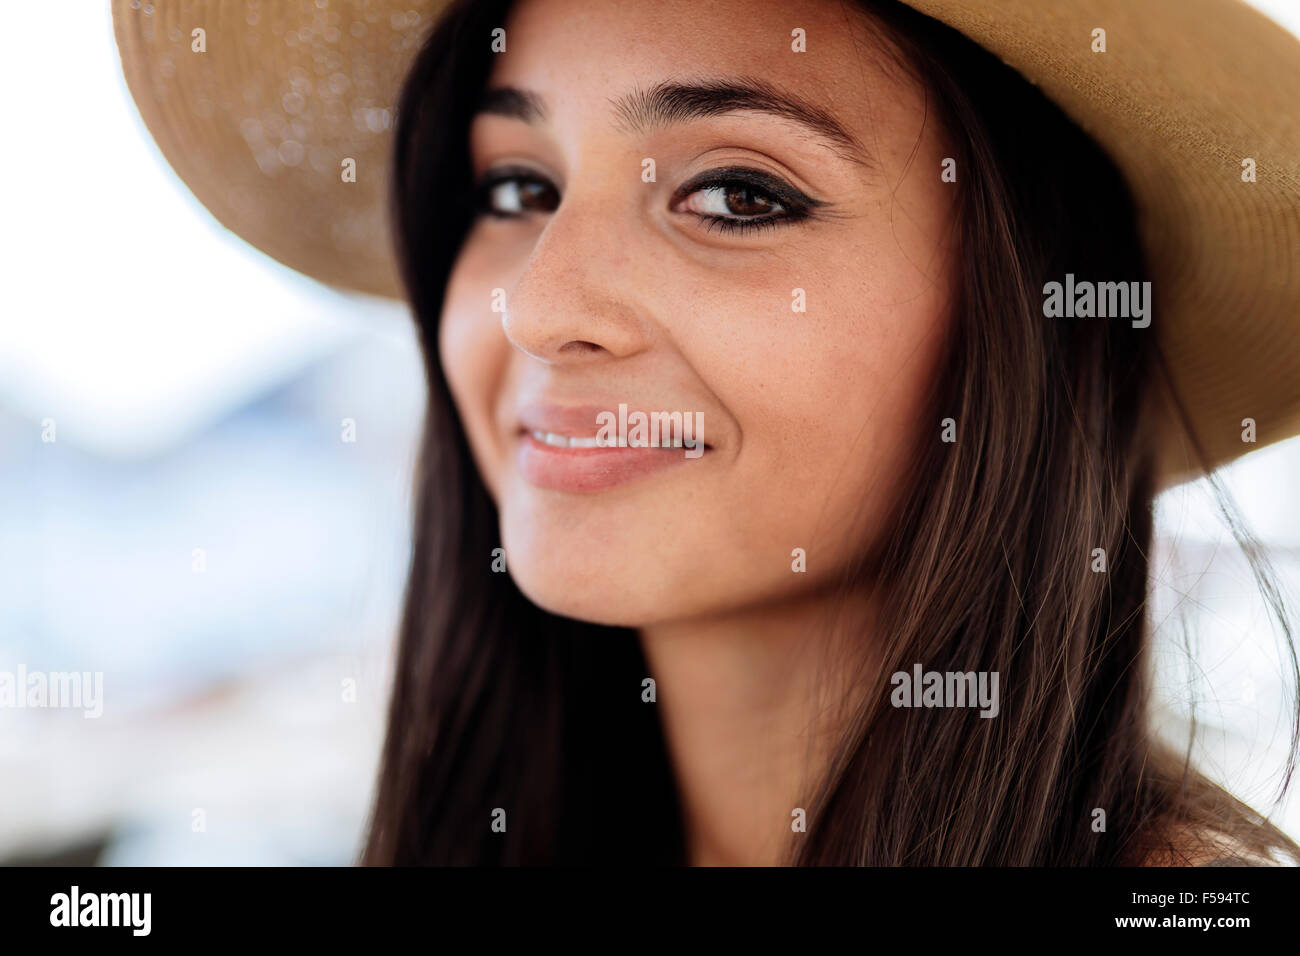 Attractive young woman in hat smiling - Stock Image